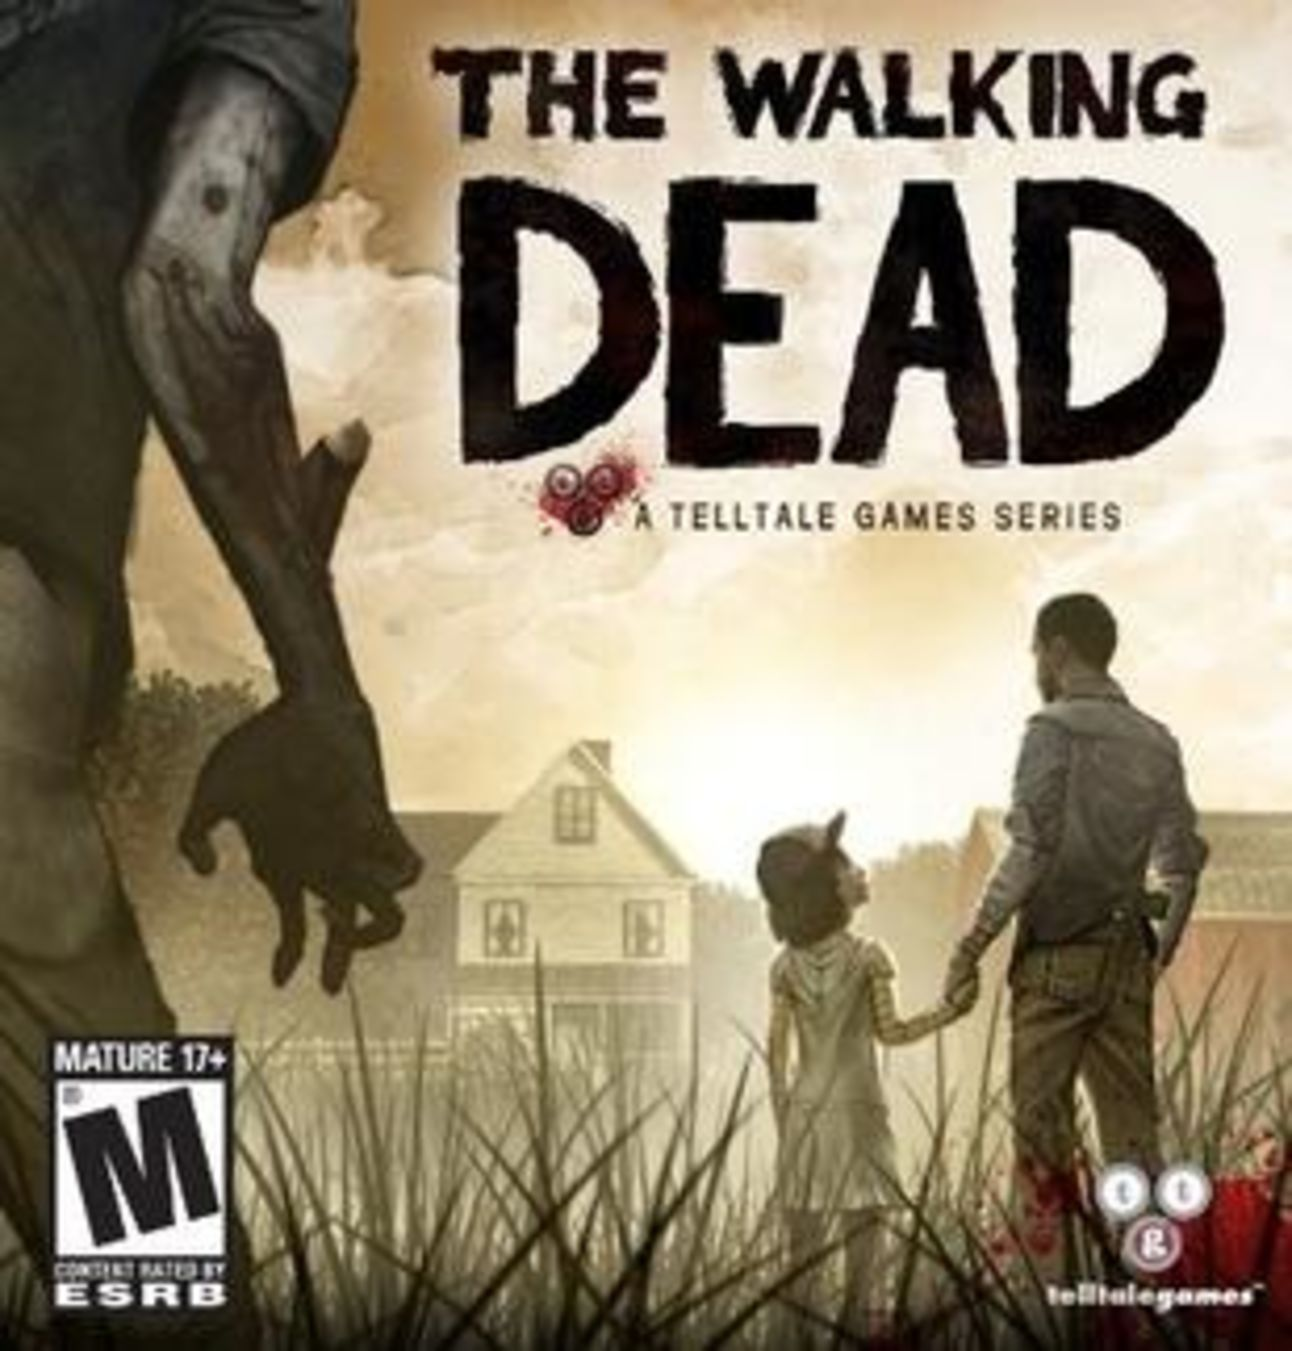 twd-game-cover.jpg